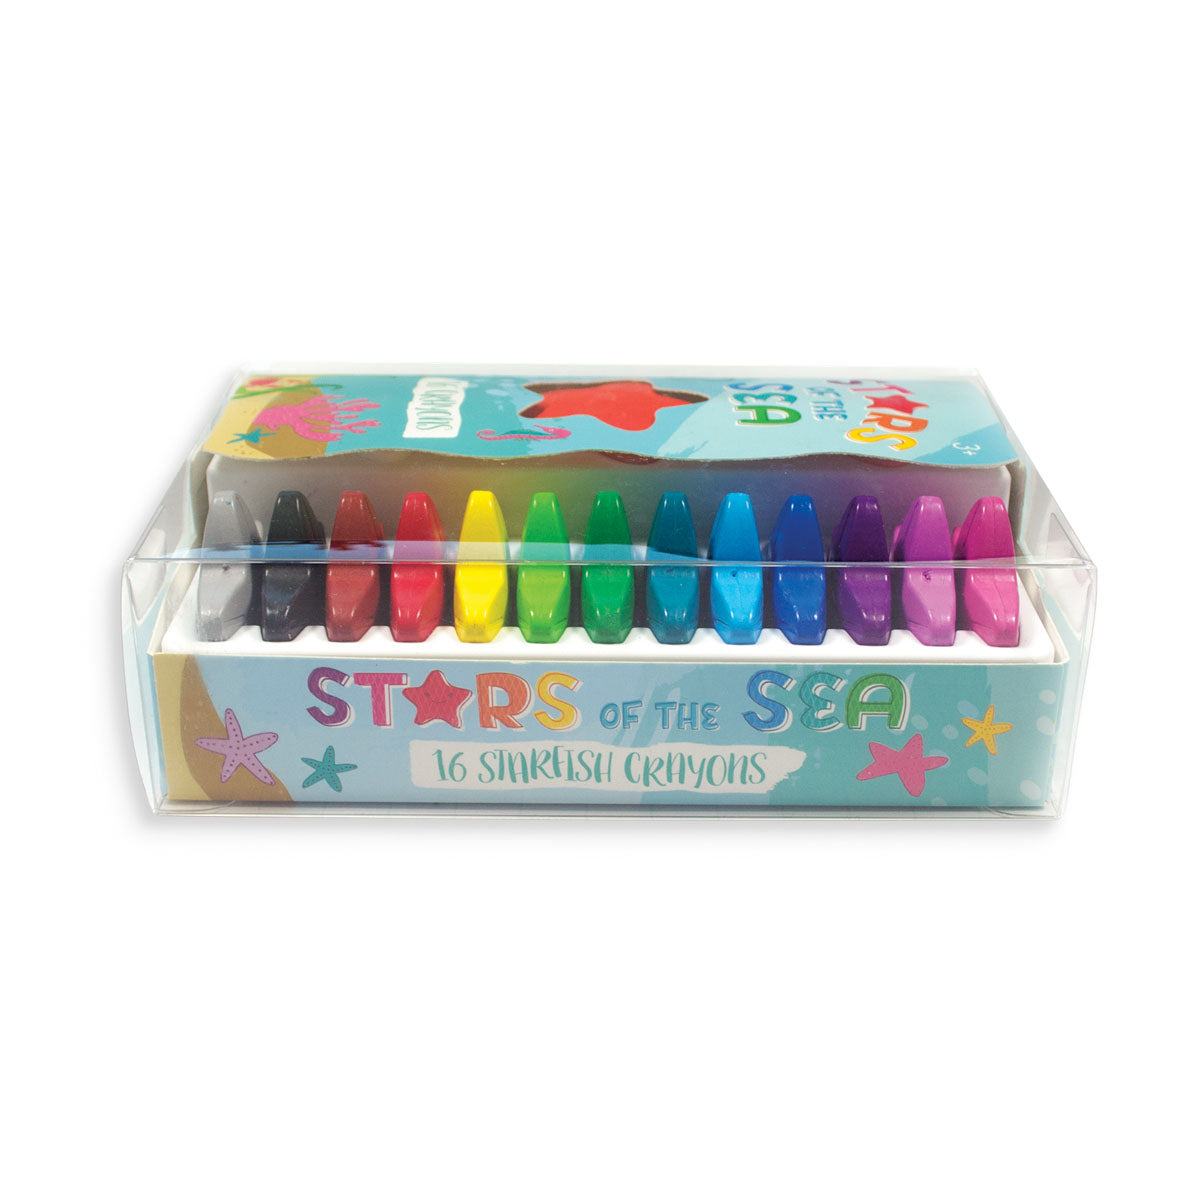 OOLY Stars of the Sea crayons in box